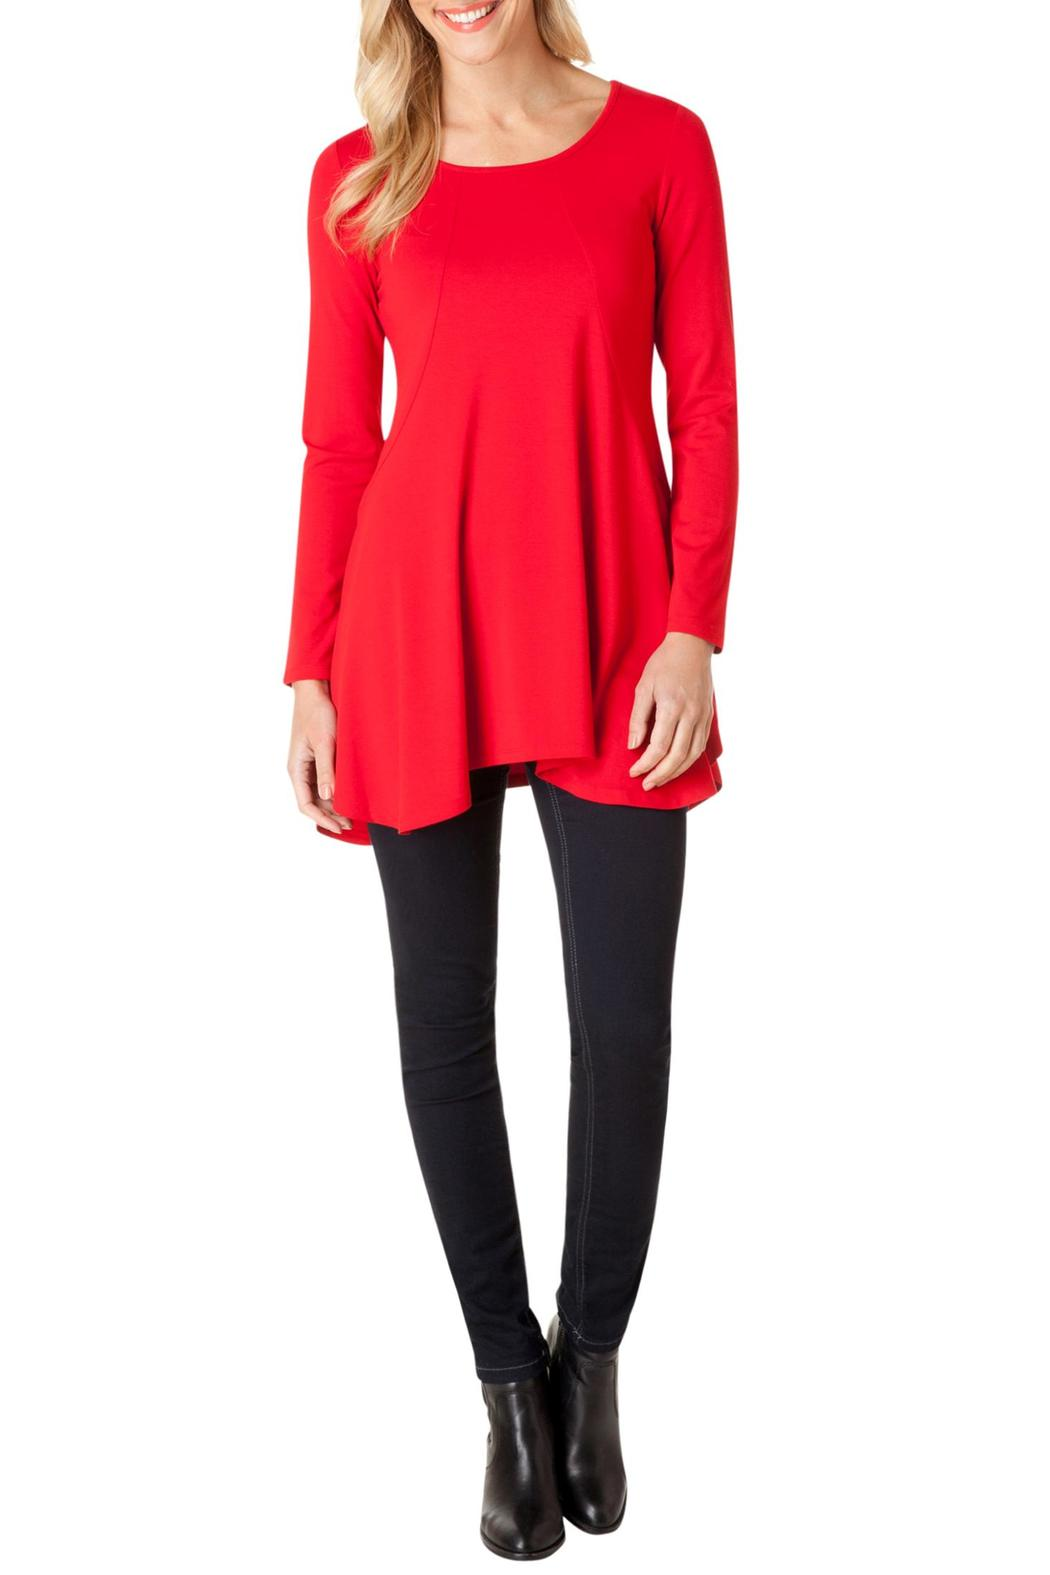 Yest Perfect Red Tunic - Main Image